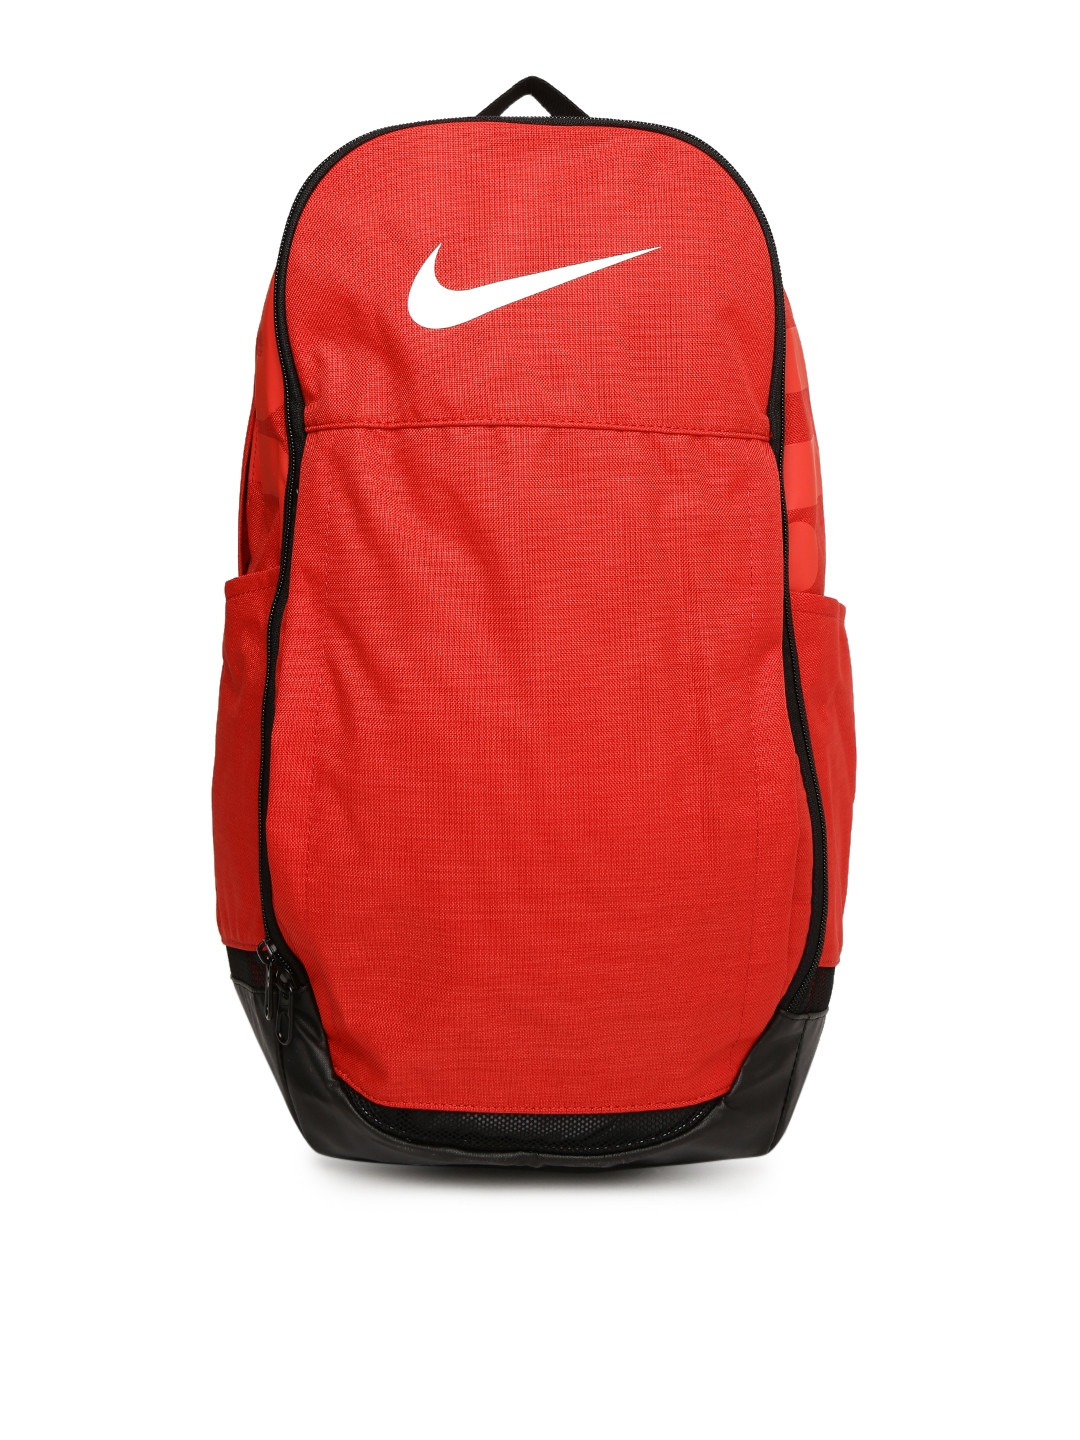 1f0a6cd68d7c2 Buy Nike Unisex Red Solid BRSLA XL Backpack - Backpacks for Unisex ...